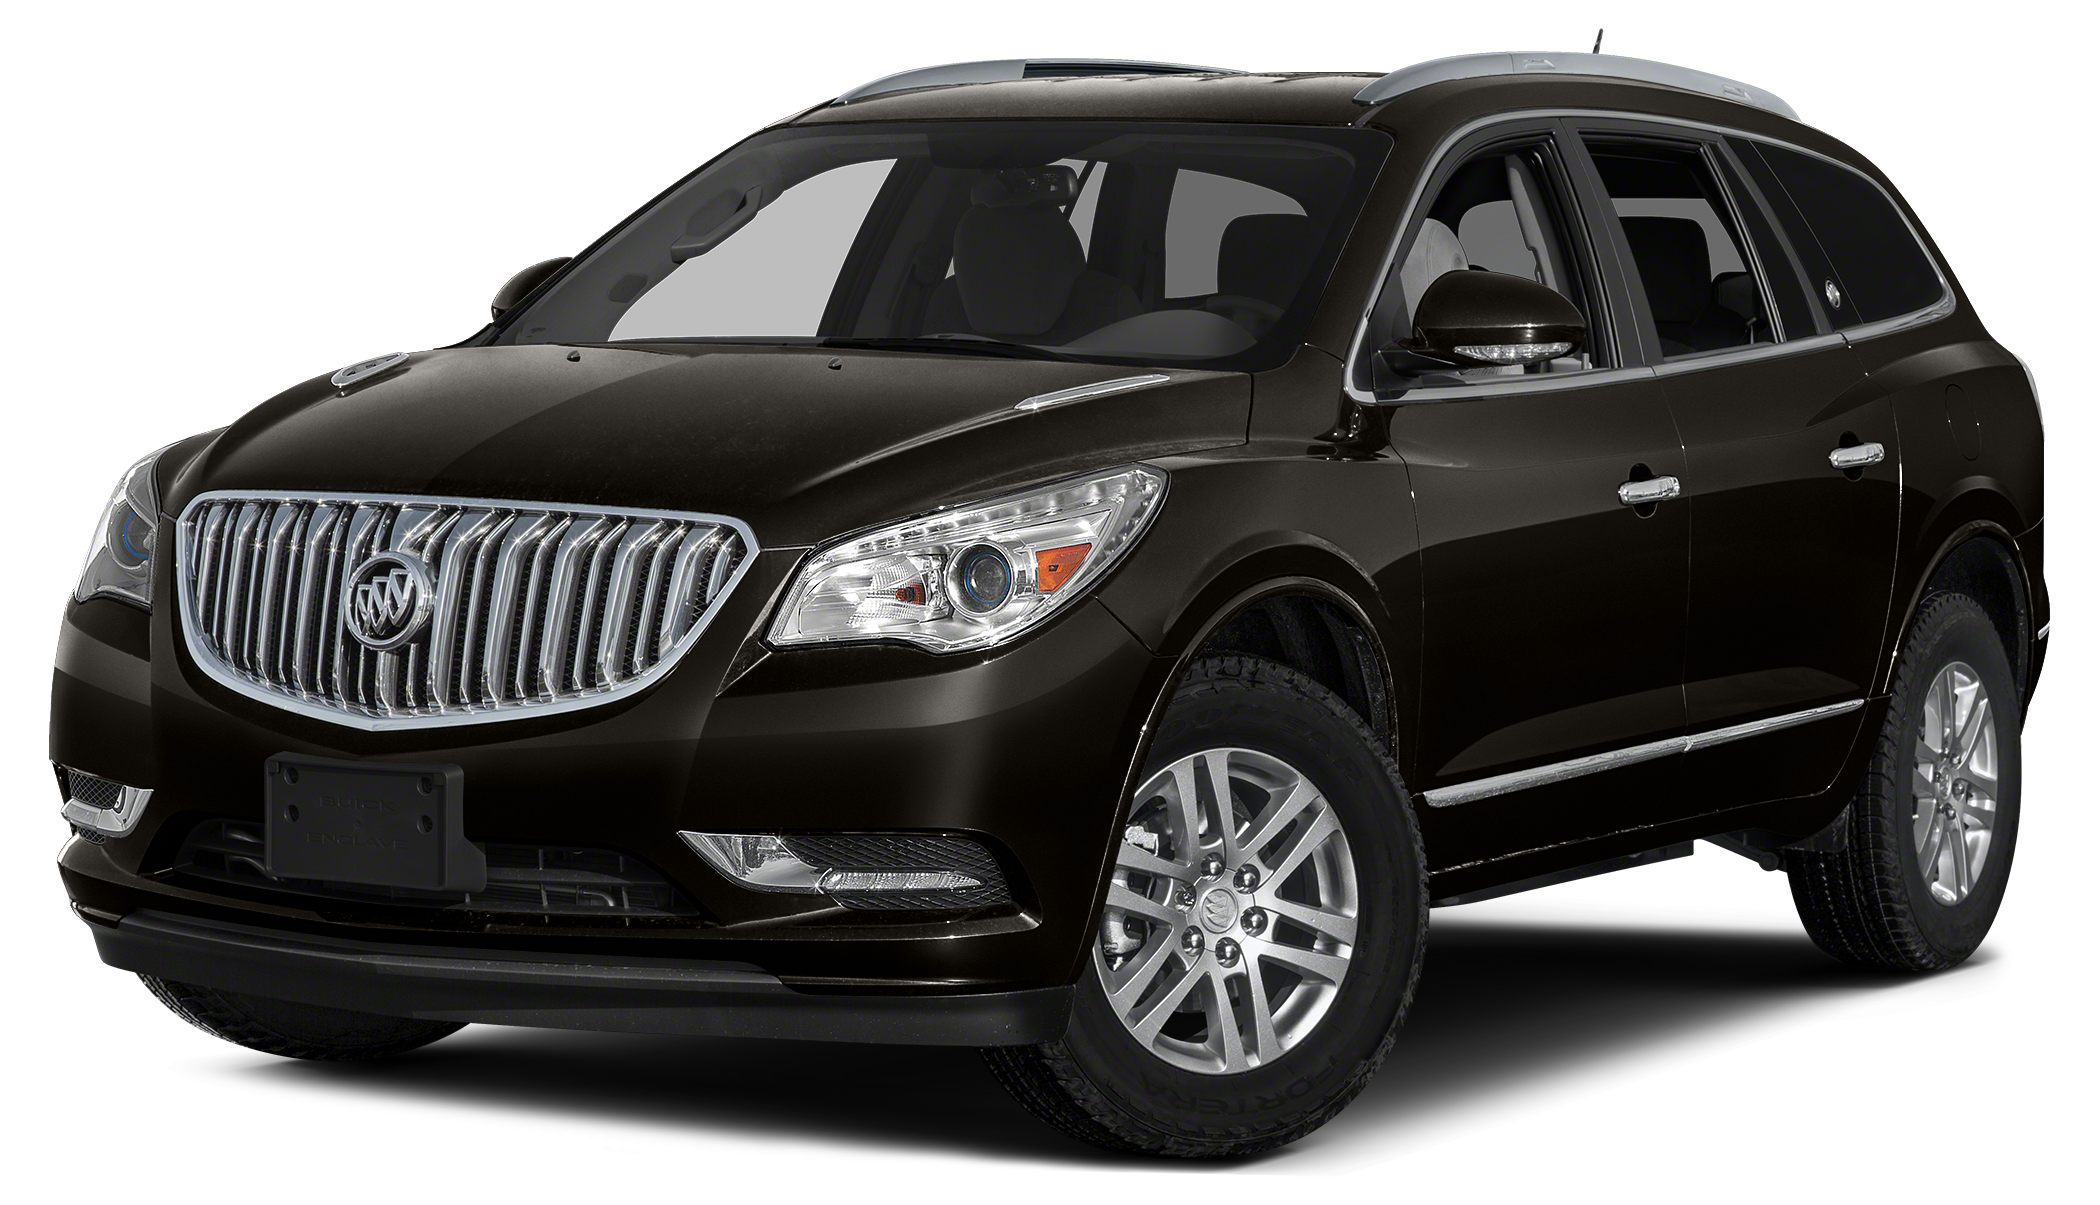 2017 Buick Enclave Leather It doesnt get much better than this 2017 Buick Enclave Leather which